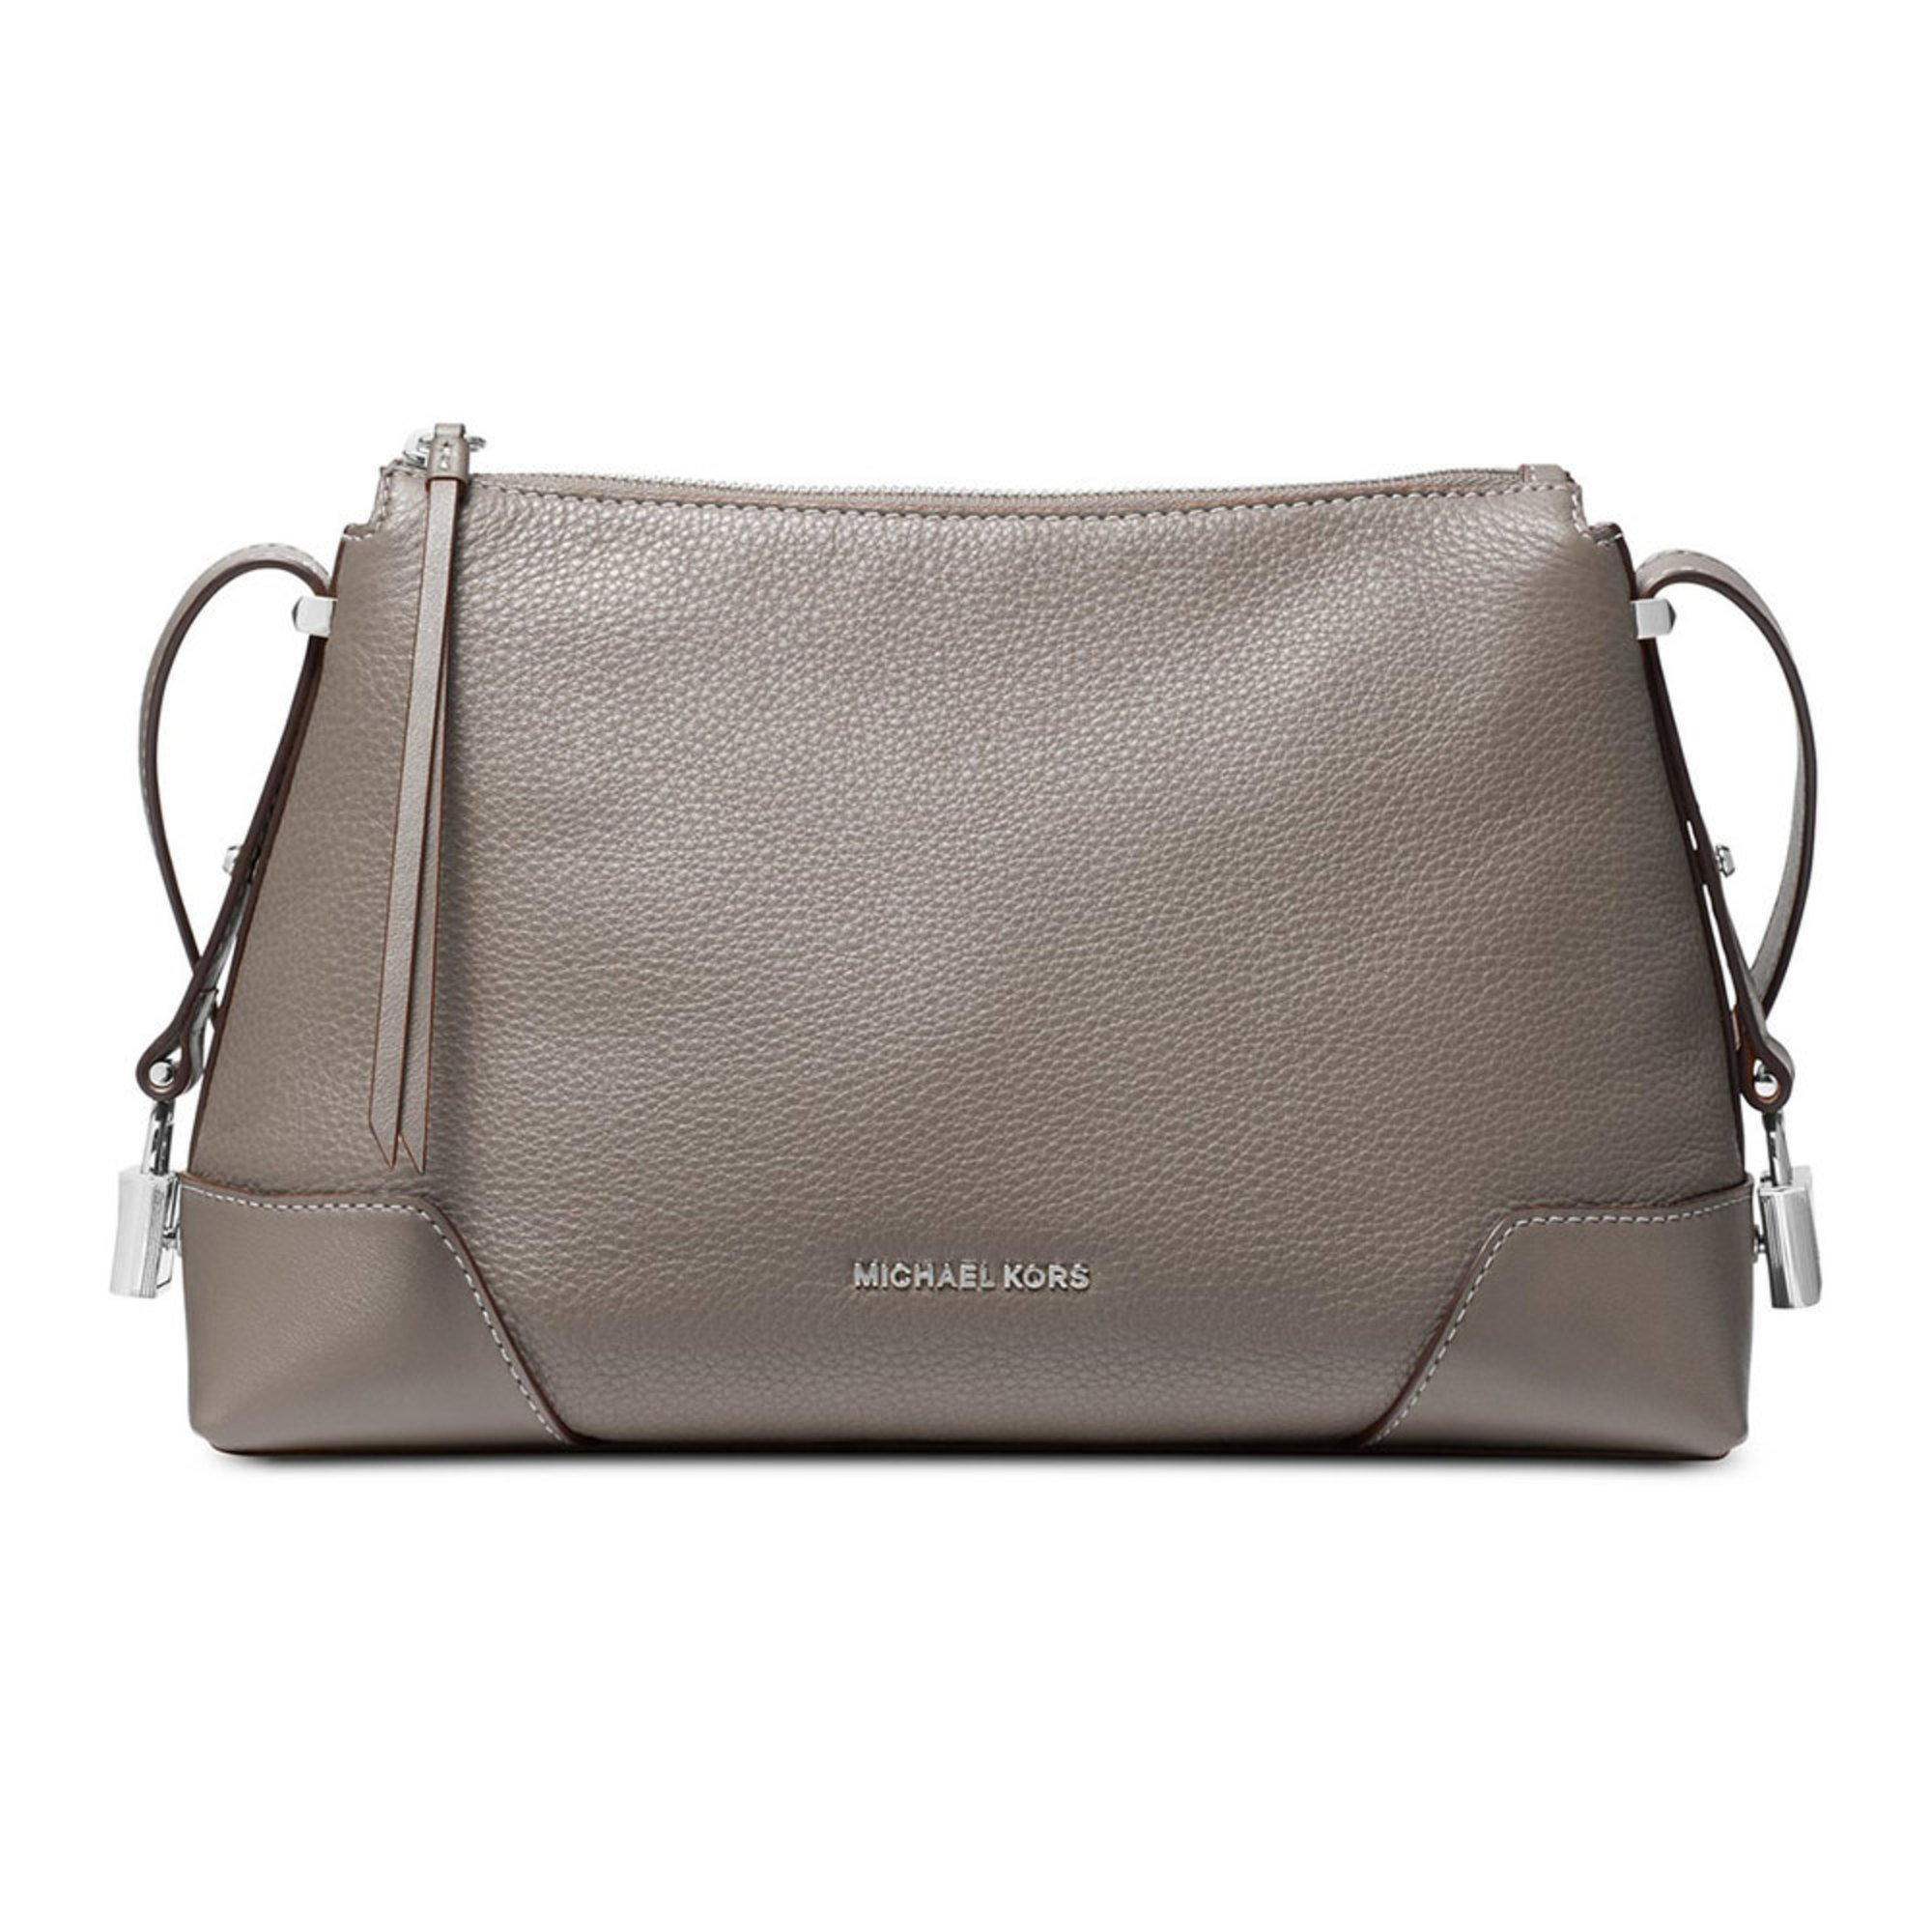 13dd0d1b5ae634 Michael Kors Crosby Medium Messenger | Crossbody & Messenger Bags ...